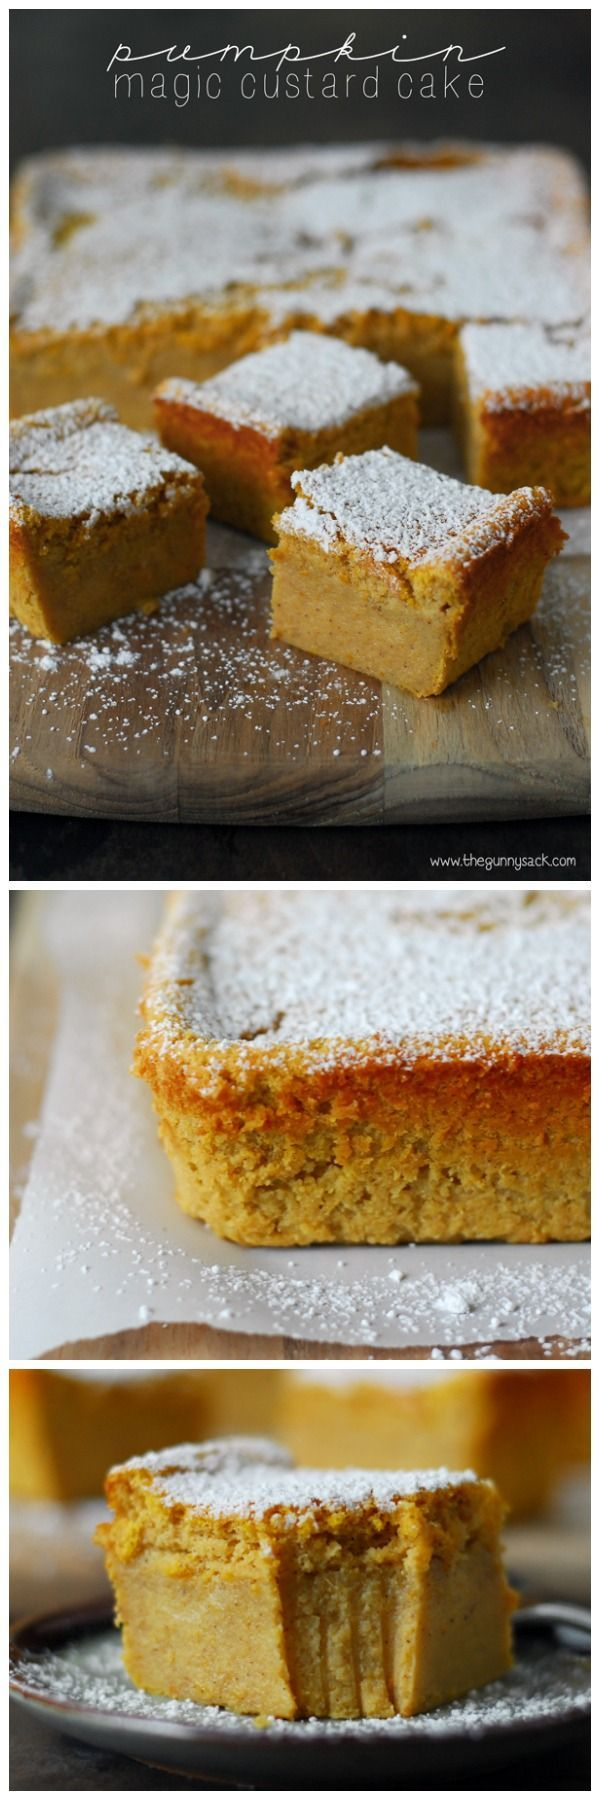 This Pumpkin Magic Custard Cake recipe is like pumpkin pie without the crust. It has a smooth custard layer topped with light, airy cake. Try it for Easter dinner!